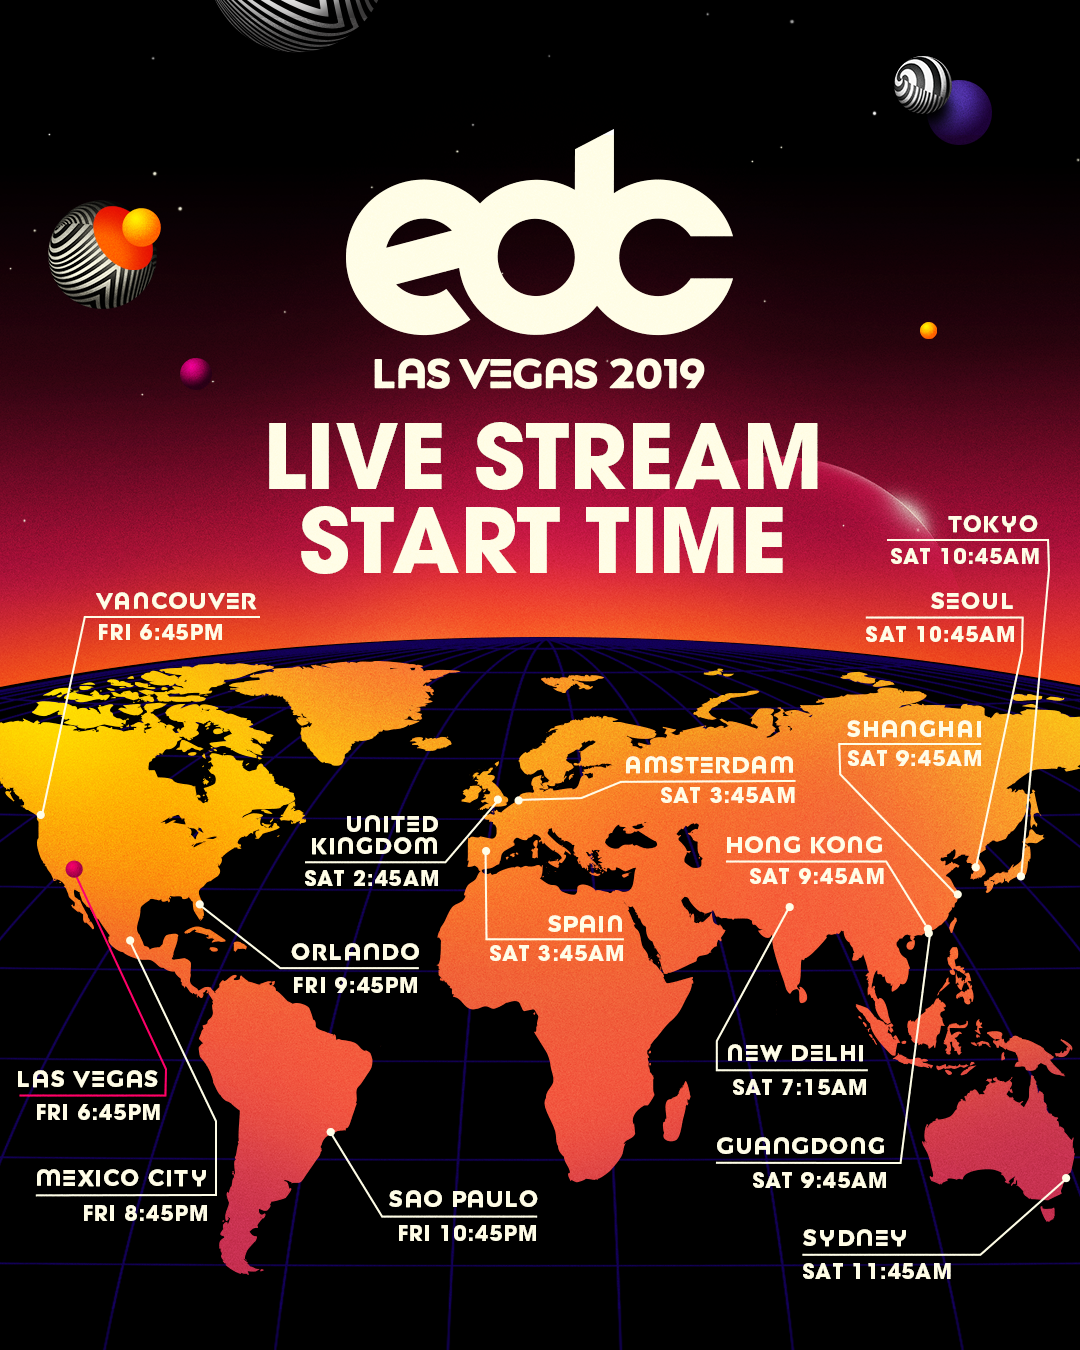 edc_las_vegas_web_live_stream_start_time_global_asset_1080x1350_r03_1.png